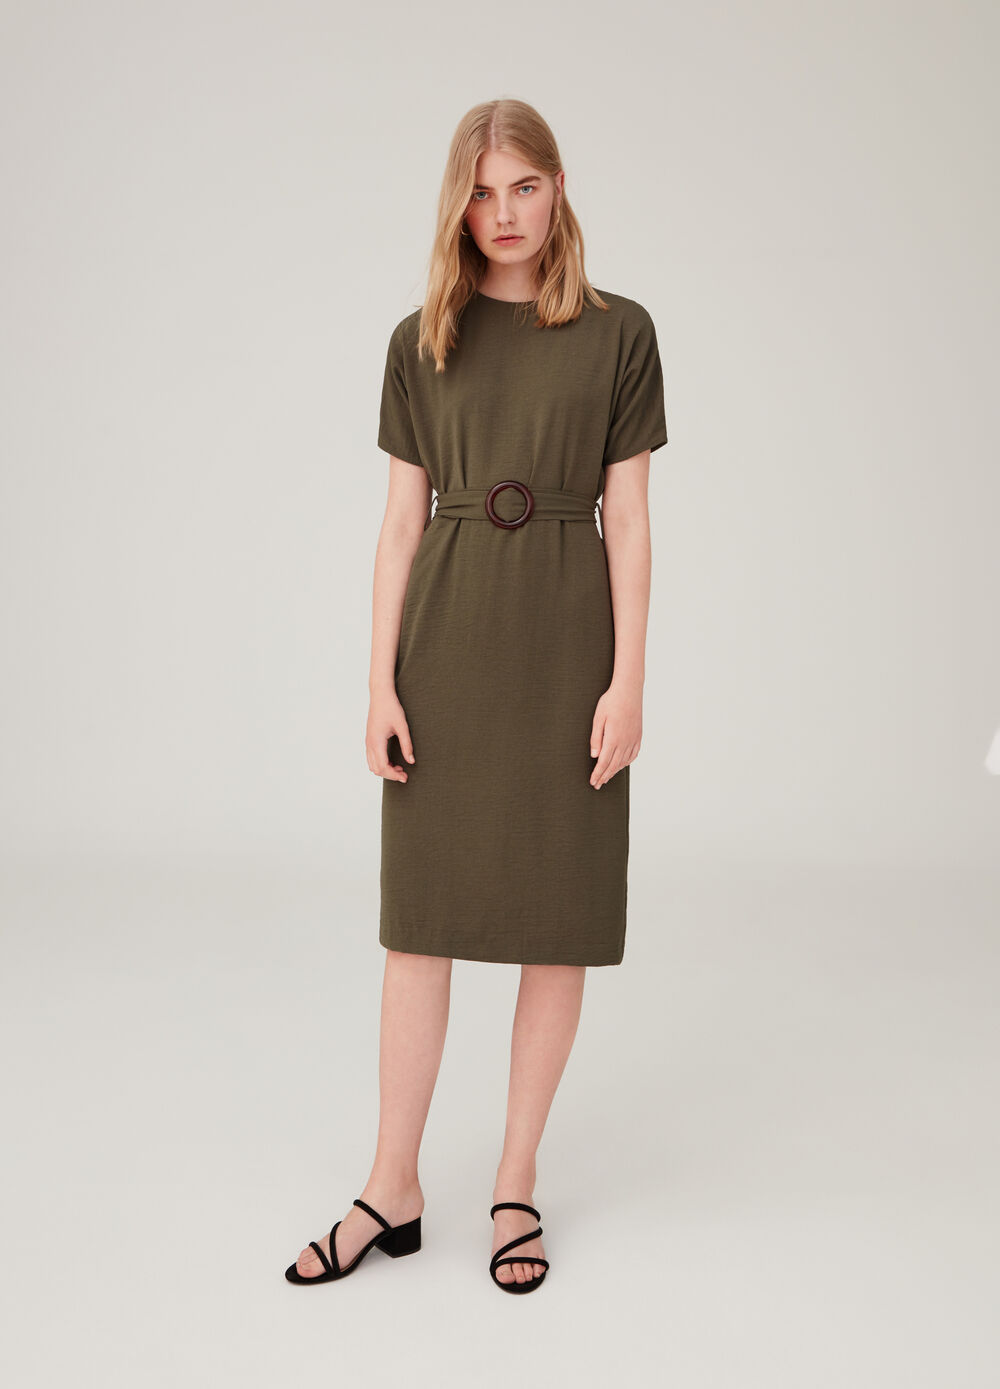 Solid colour dress with belt